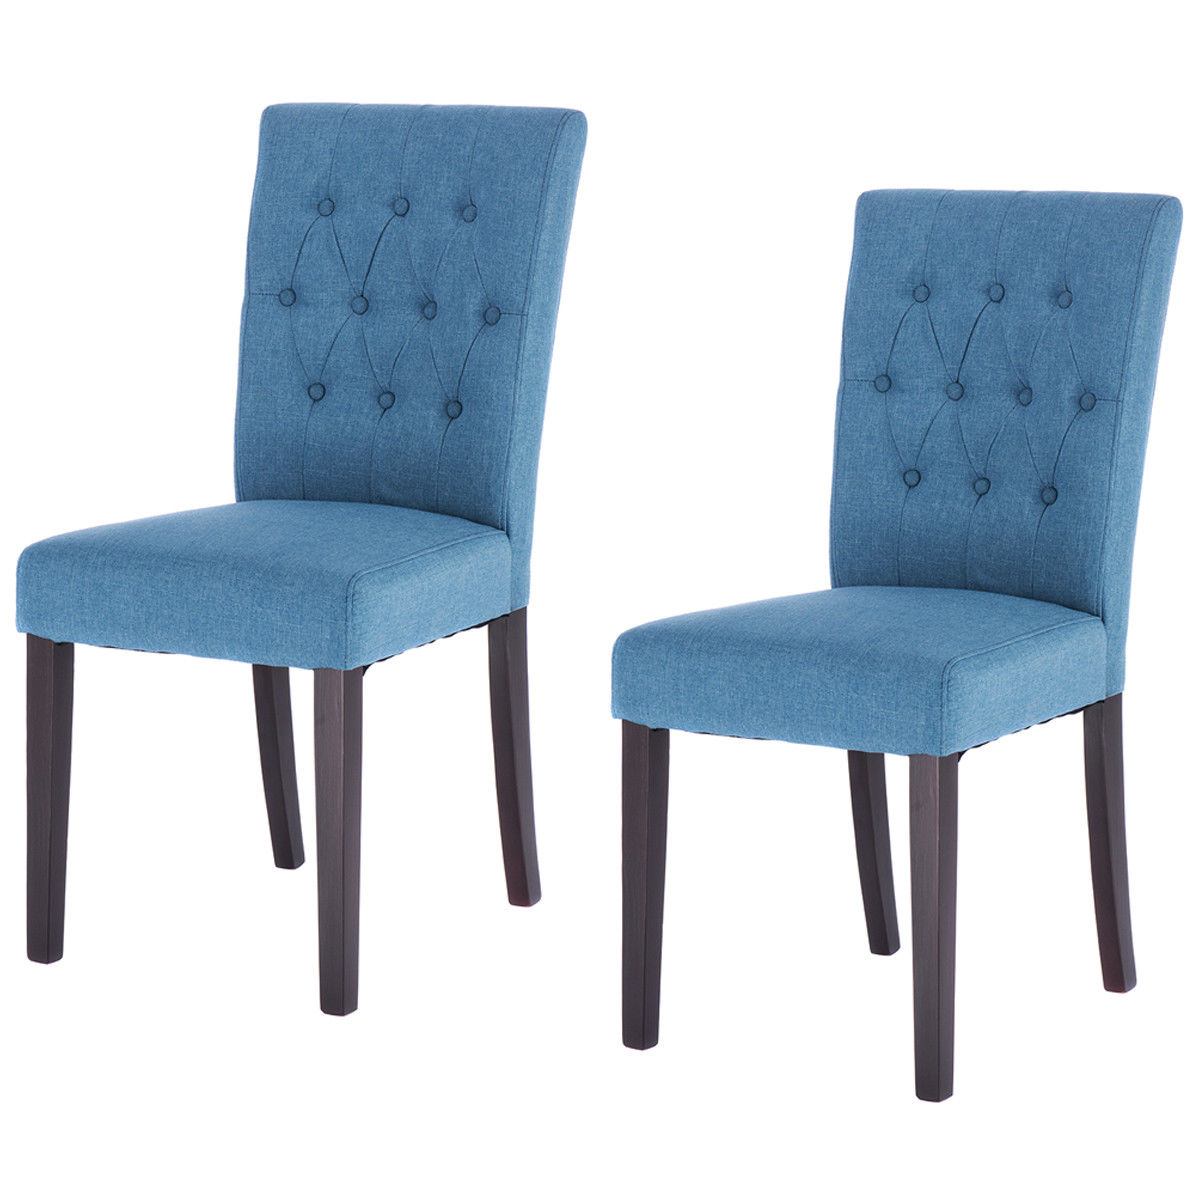 все цены на Giantex Set of 2pcs Modern Fabric Dining Chair Armless Accent Tufted Upholstered with Solid Wood Legs Home Furniture HW52778BL онлайн